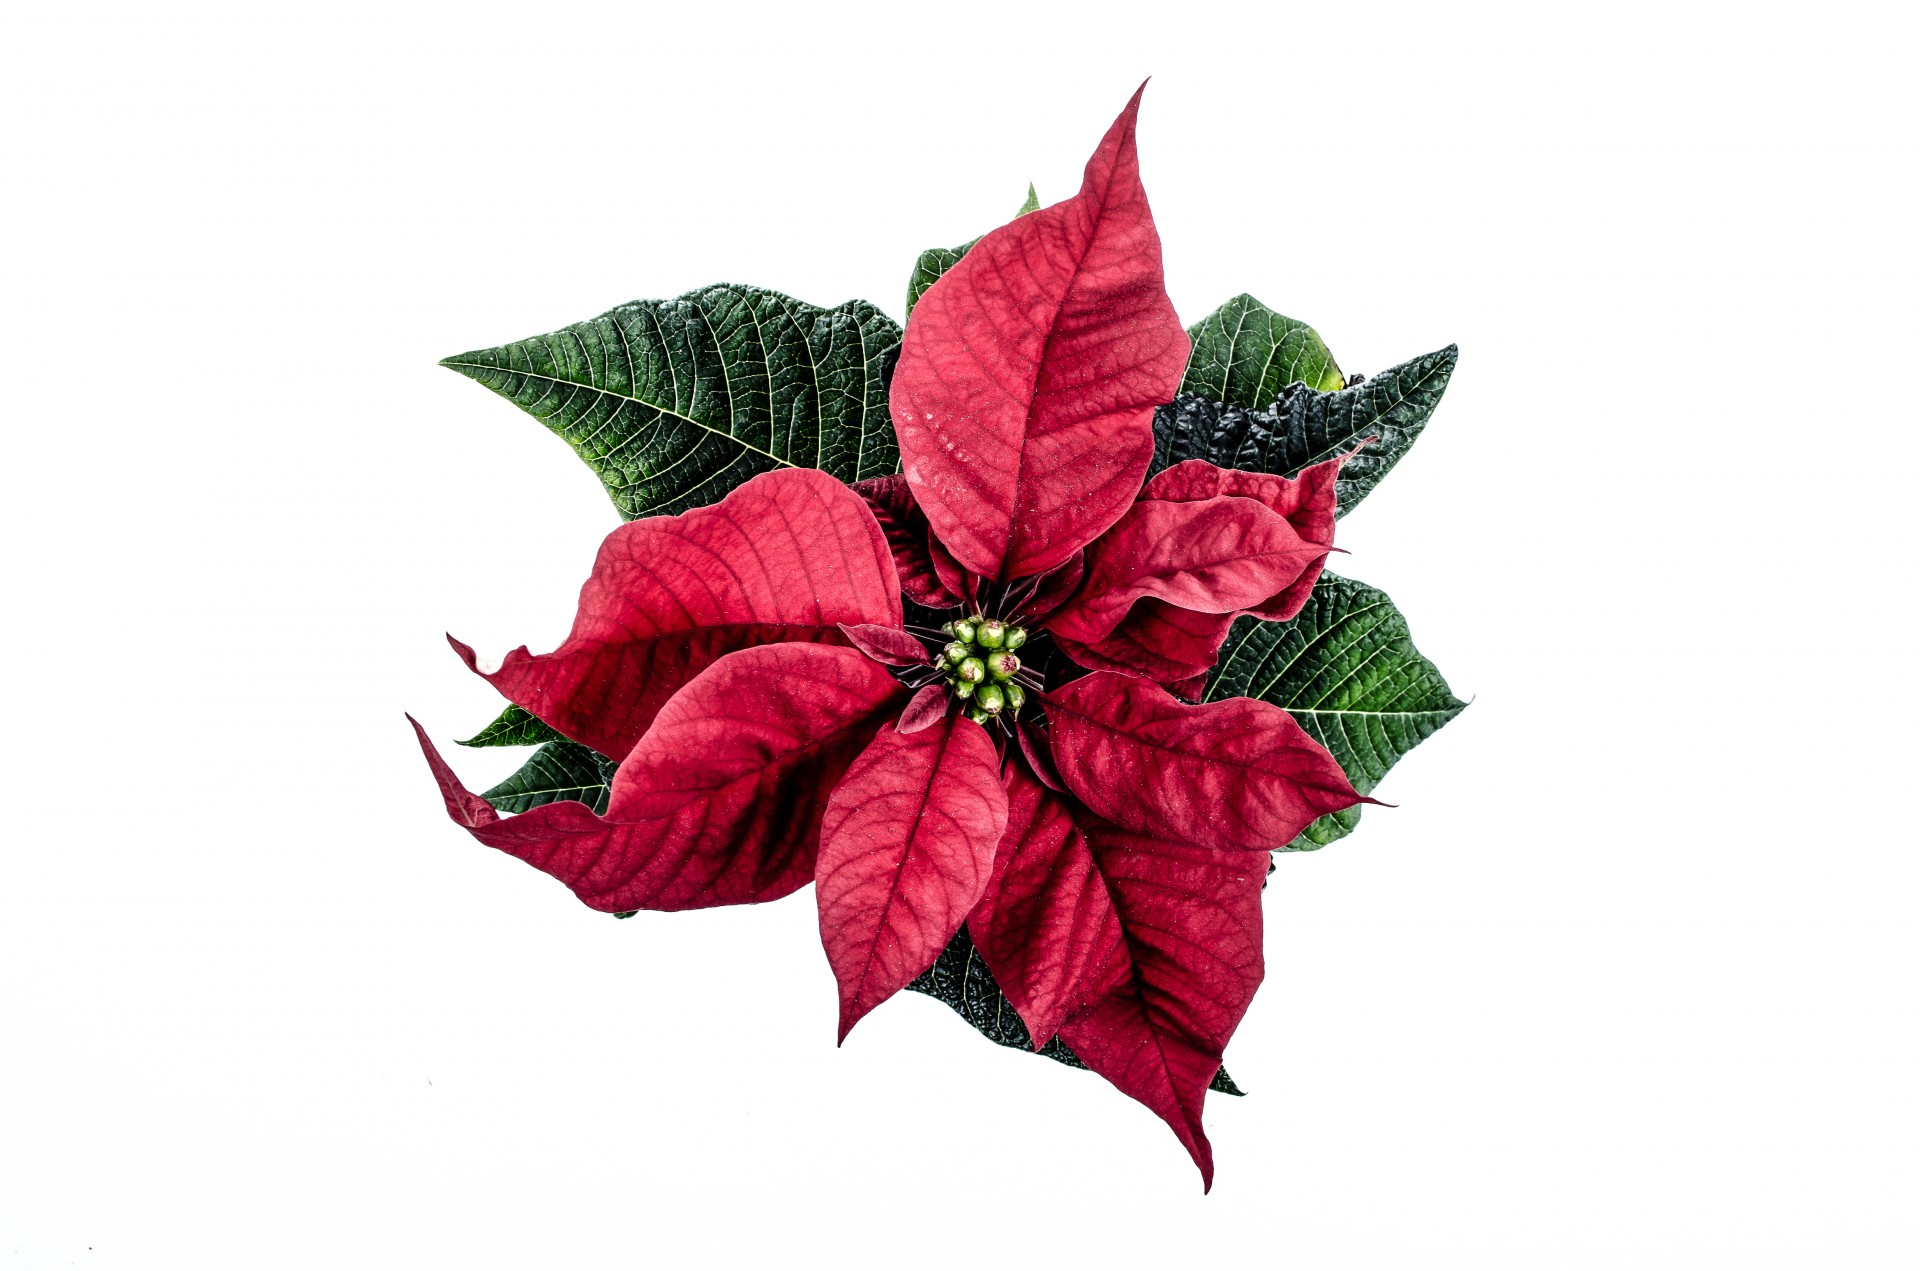 Christmas flowers pictures free clipart royalty free download Christmas Flower Free Stock Photo - Public Domain Pictures clipart royalty free download